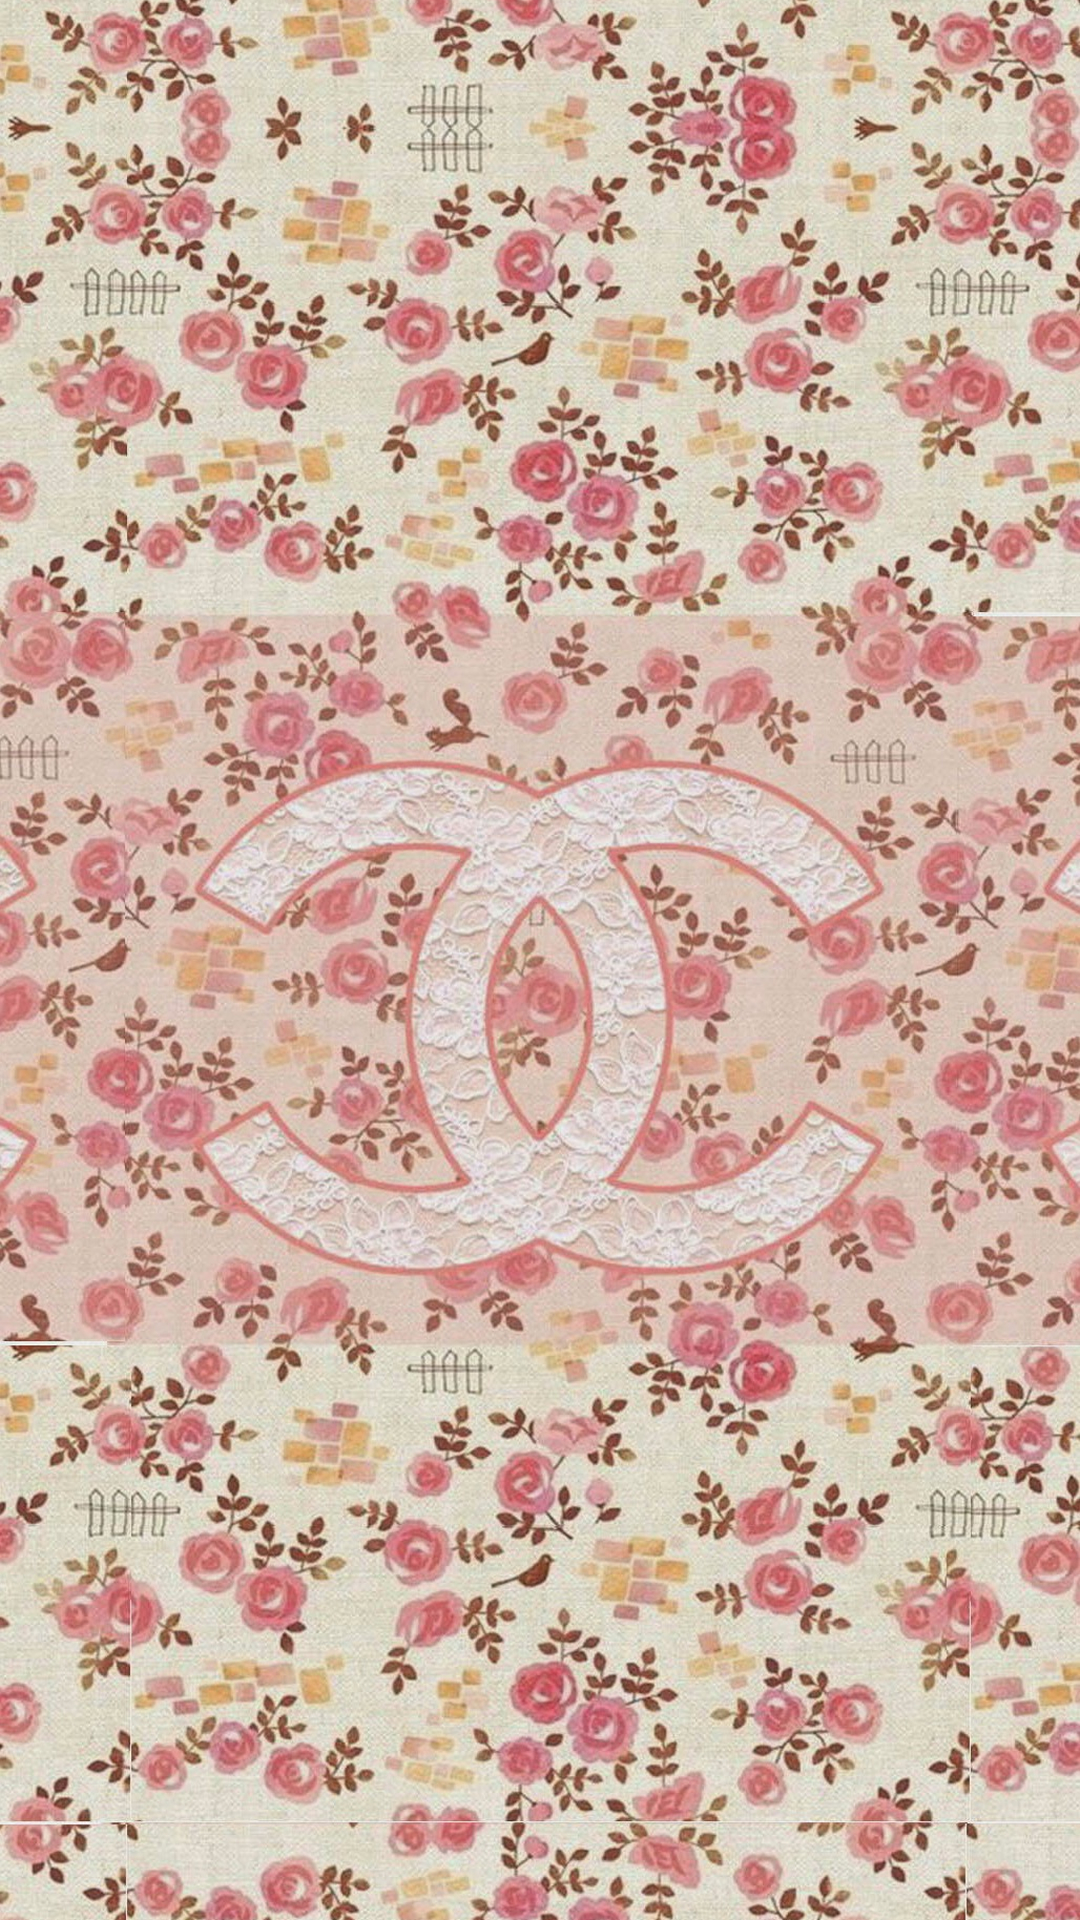 Coco Chanel Flowers Pattern Logo iPhone 6 Wallpaper Download iPhone 1080x1920